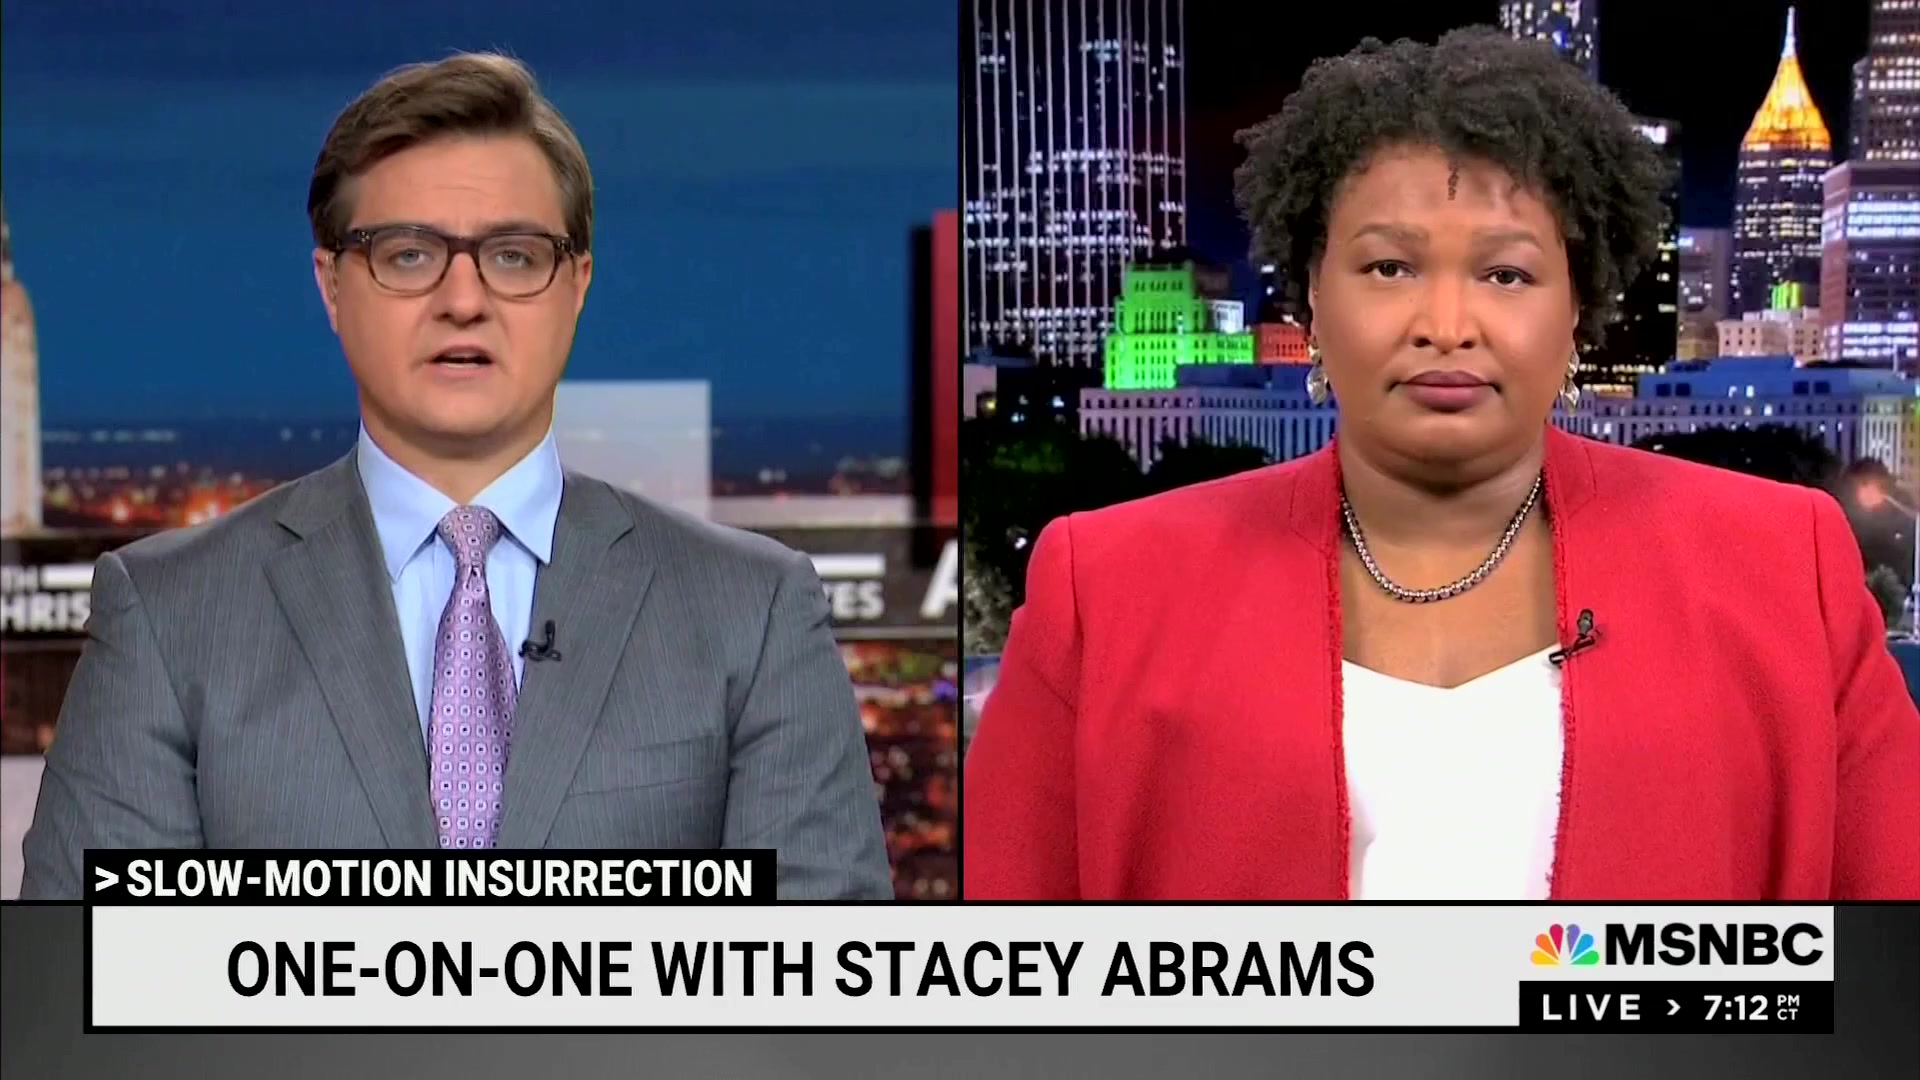 MSNBC's Chris Hayes invites Stacey Abrams to discuss GOP efforts to 'undermine our democracy'